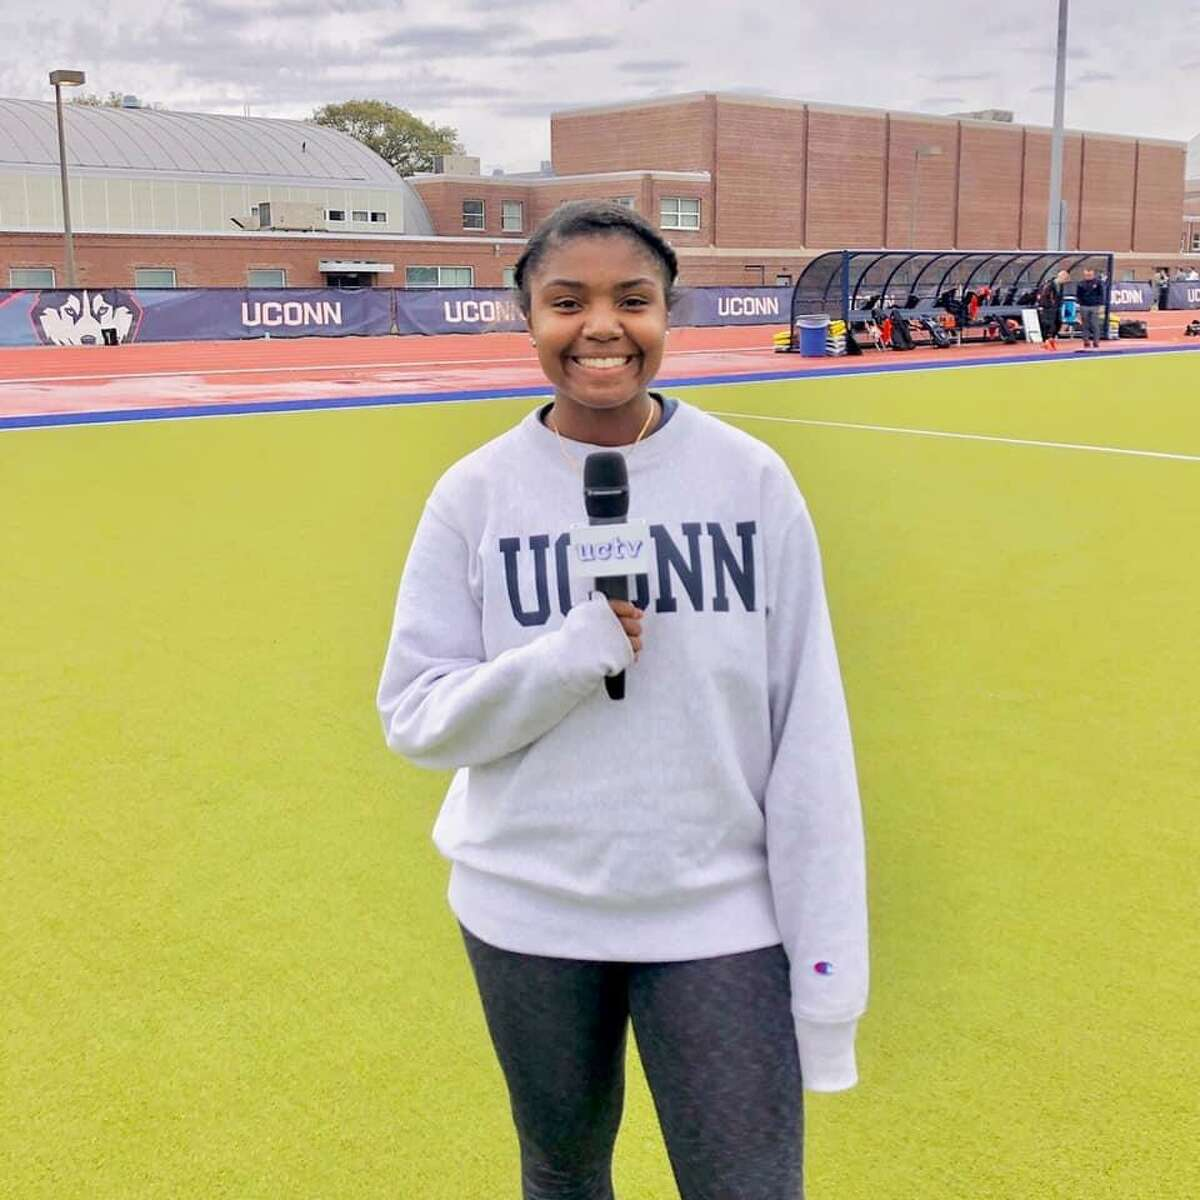 Samara Thacker found covering sports at UConn to be as rewarding as playing soccer and basketball at Law.